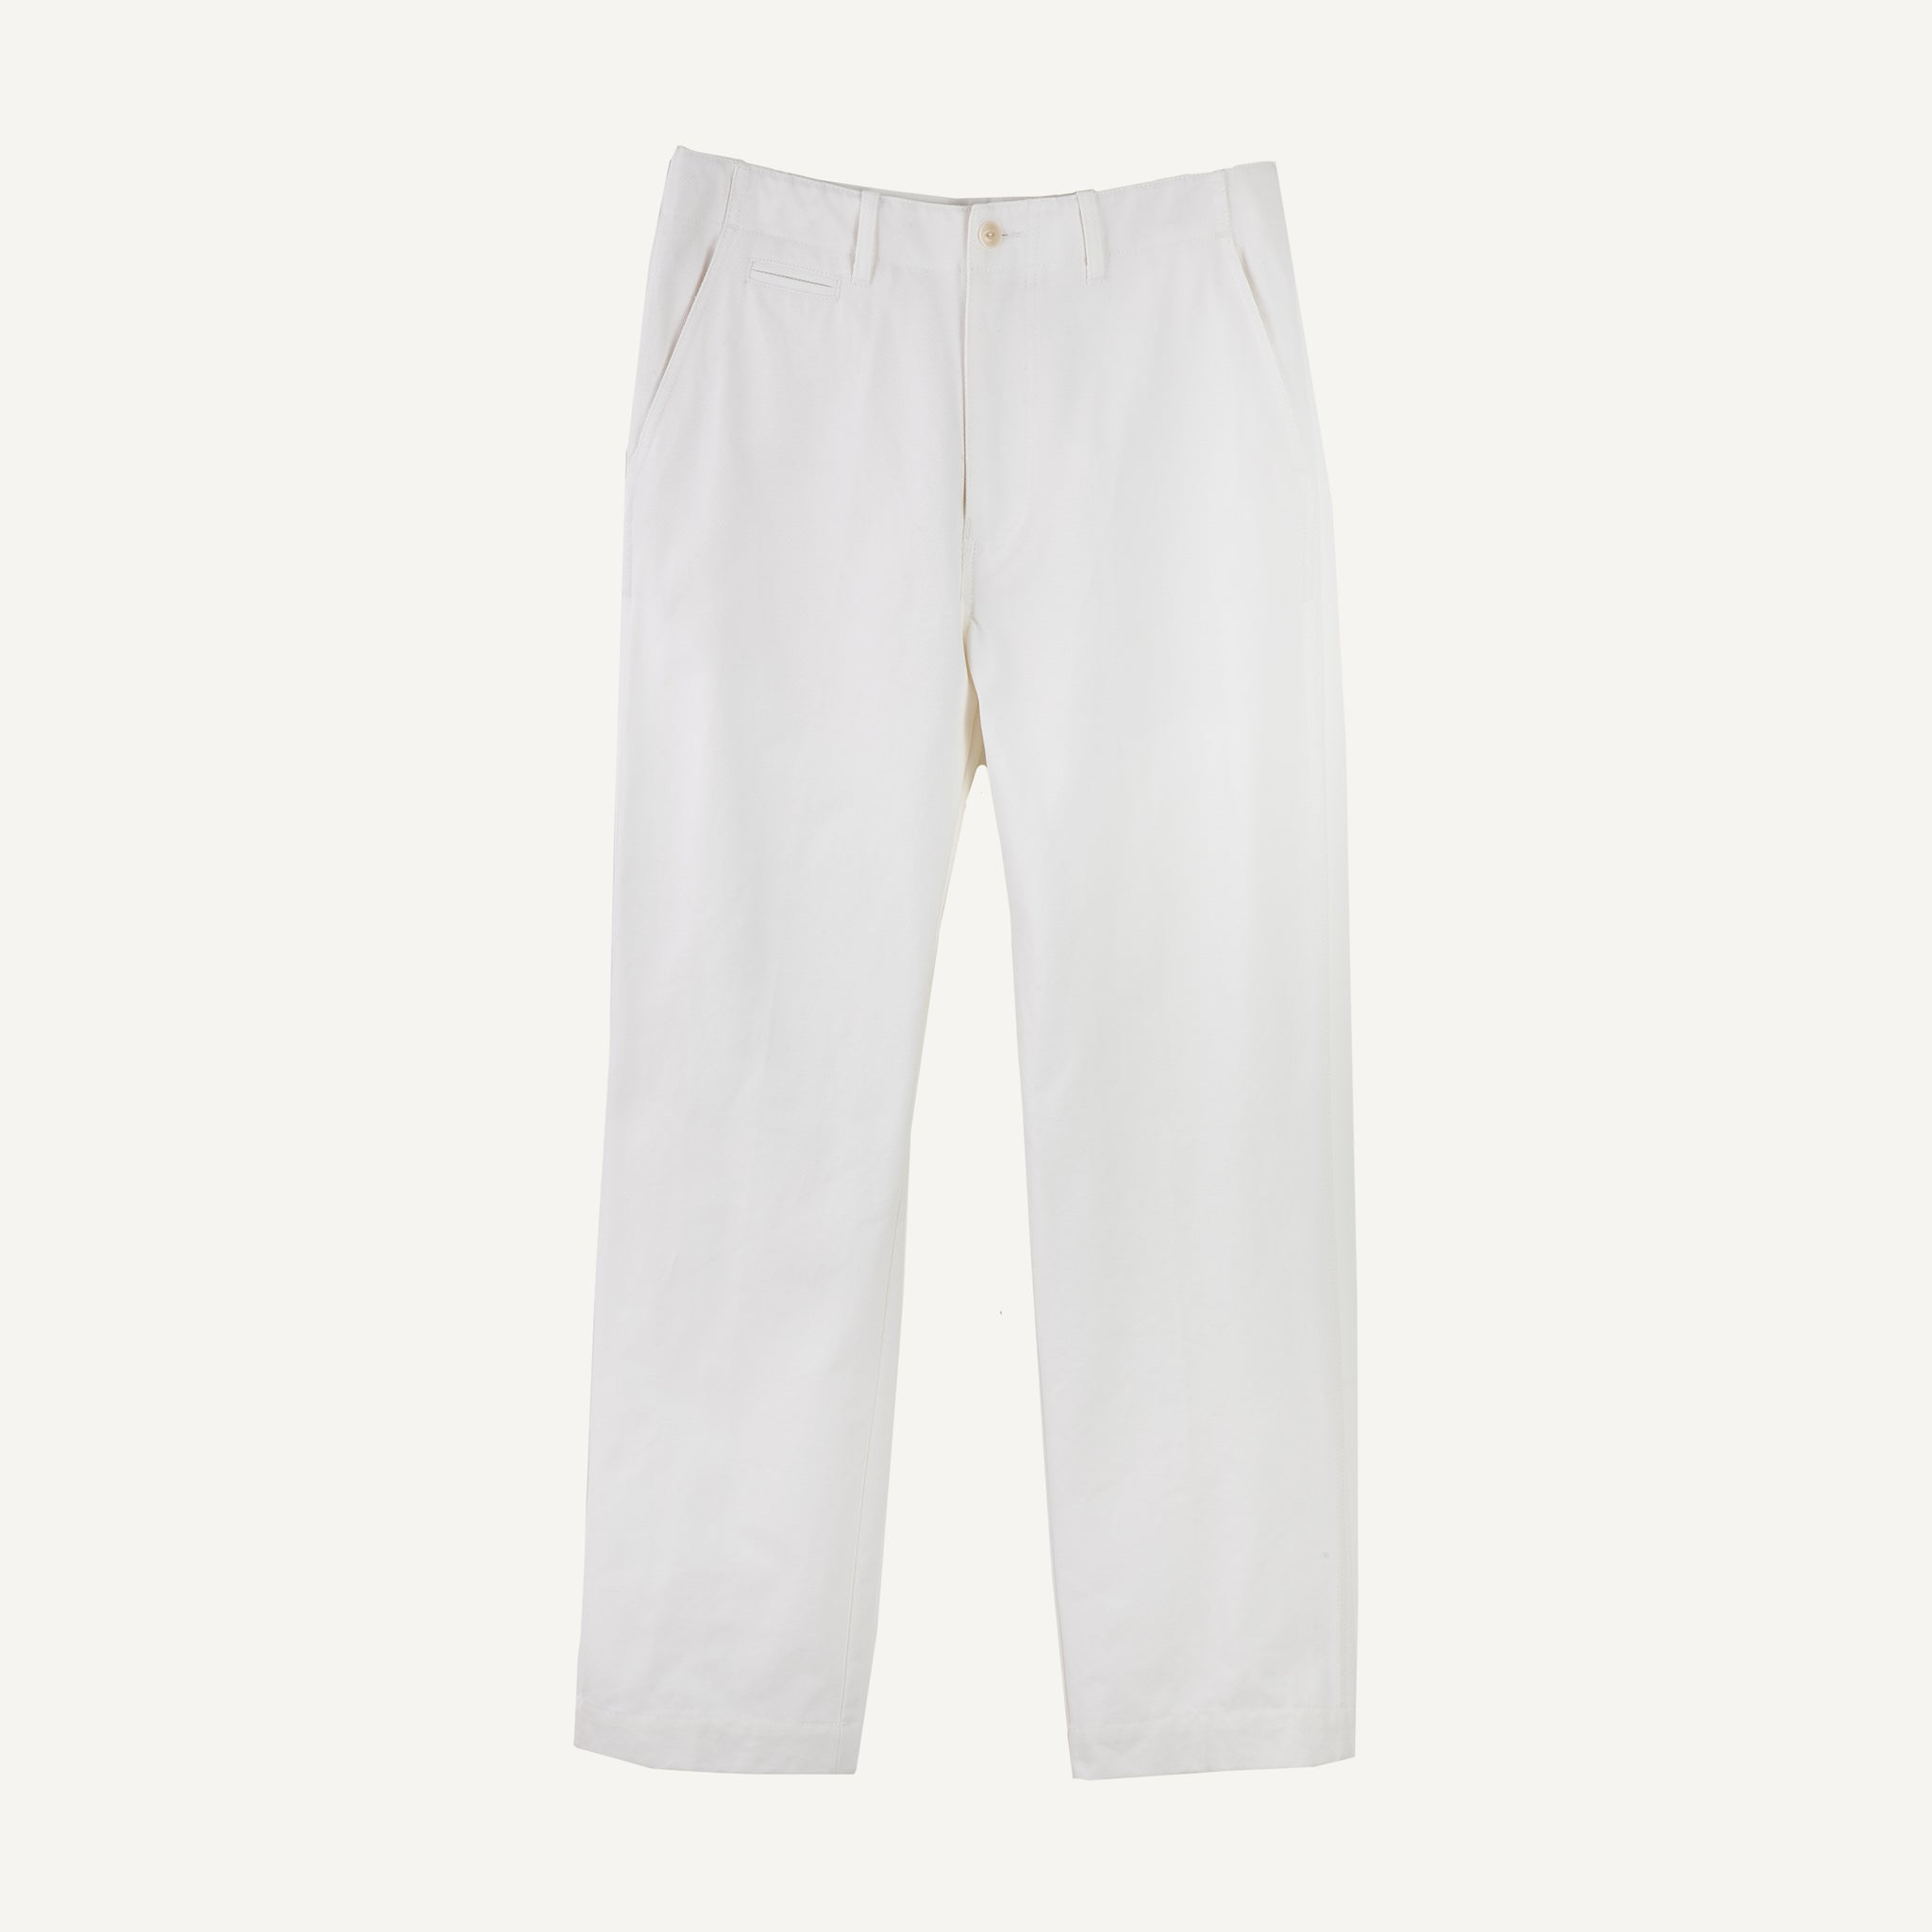 EAST HARBOUR SURPLUS CHINO